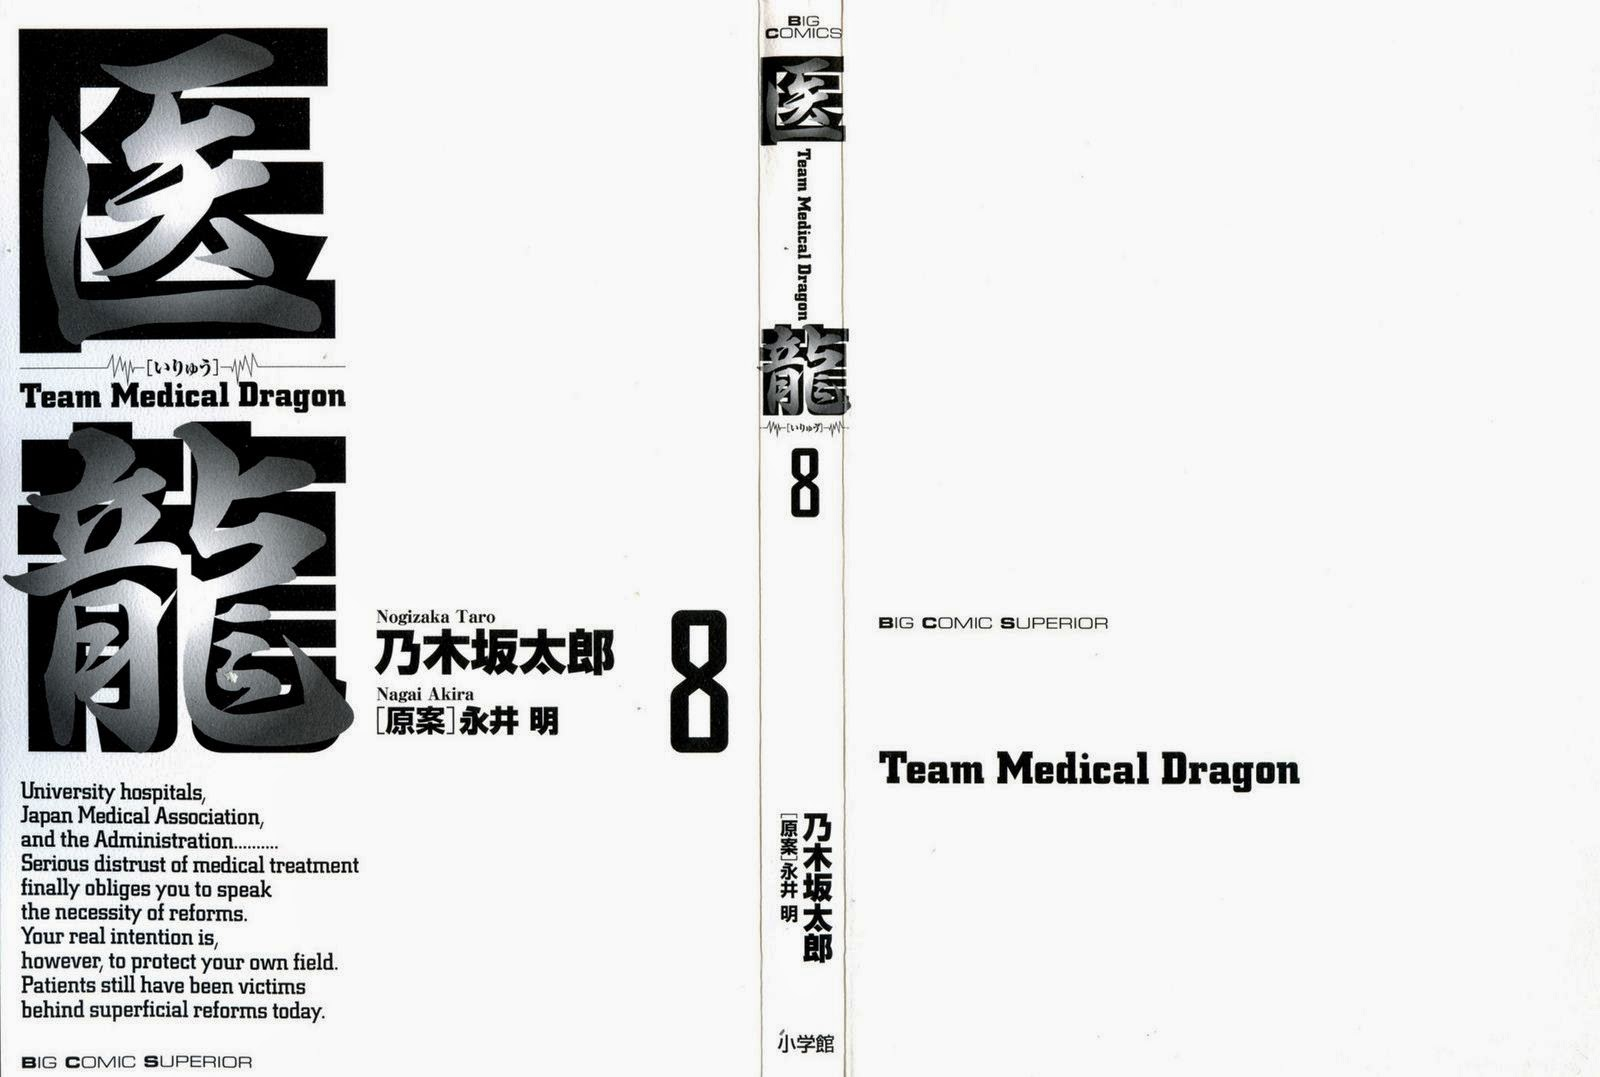 Team Medical Dragon - Long Tinh Y Đội